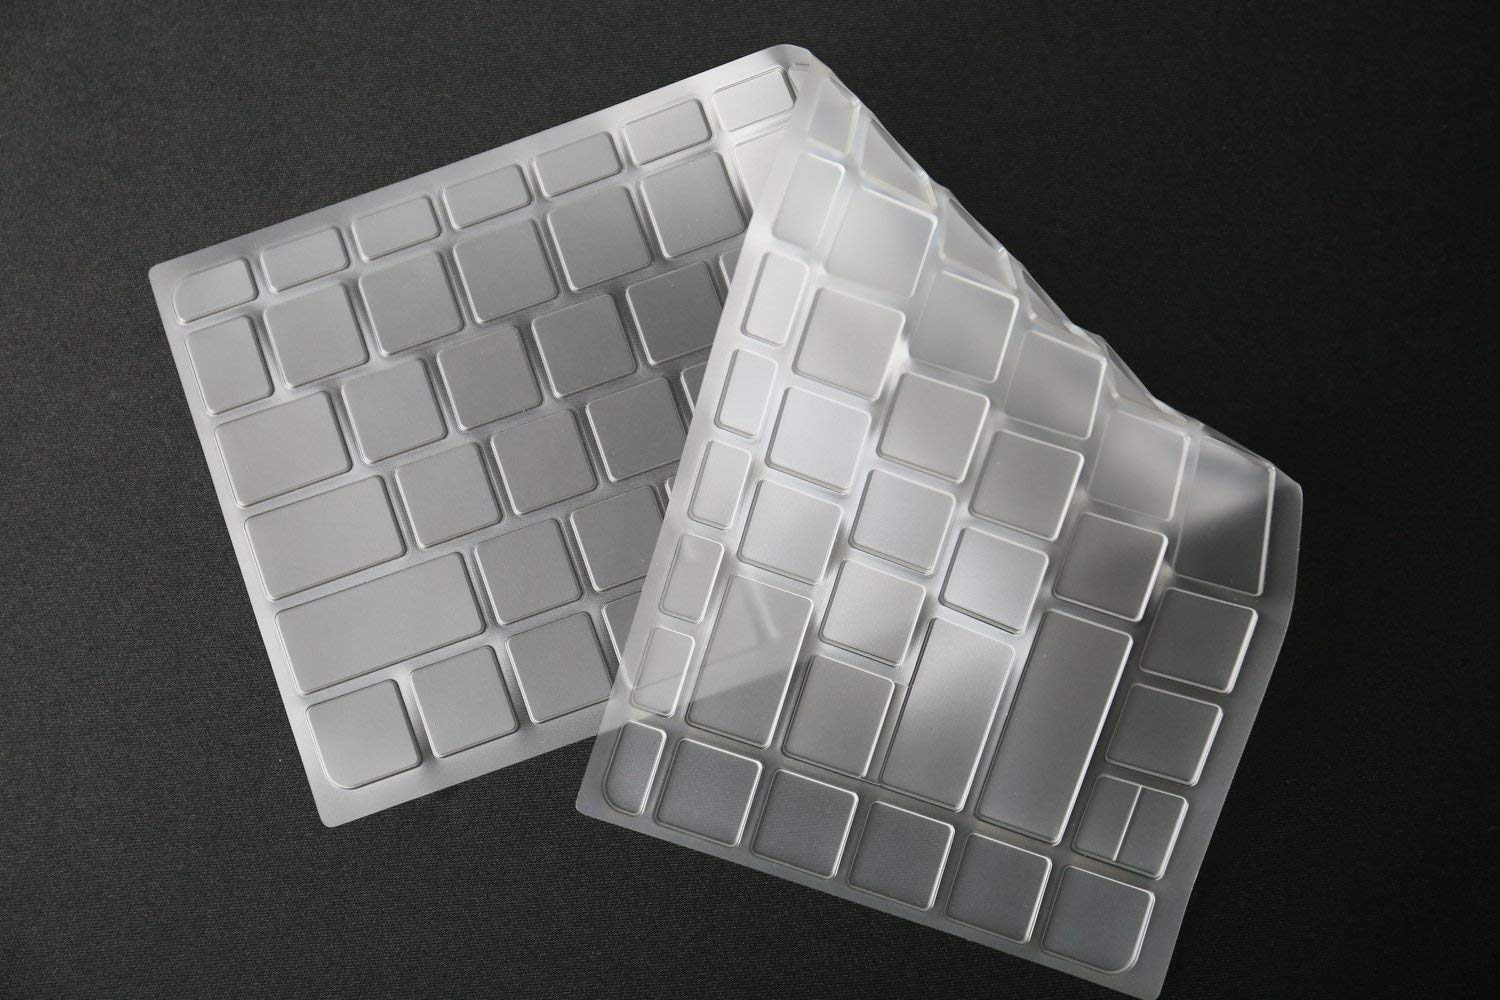 Bodu Clear Keyboard Protector Cover Skin for HP Pavilion HP Pavilion 14-ab000 14-ac000 14-ad000 14-al000 14-an000 series, HP Stream 14-ax000 series (US Layout)